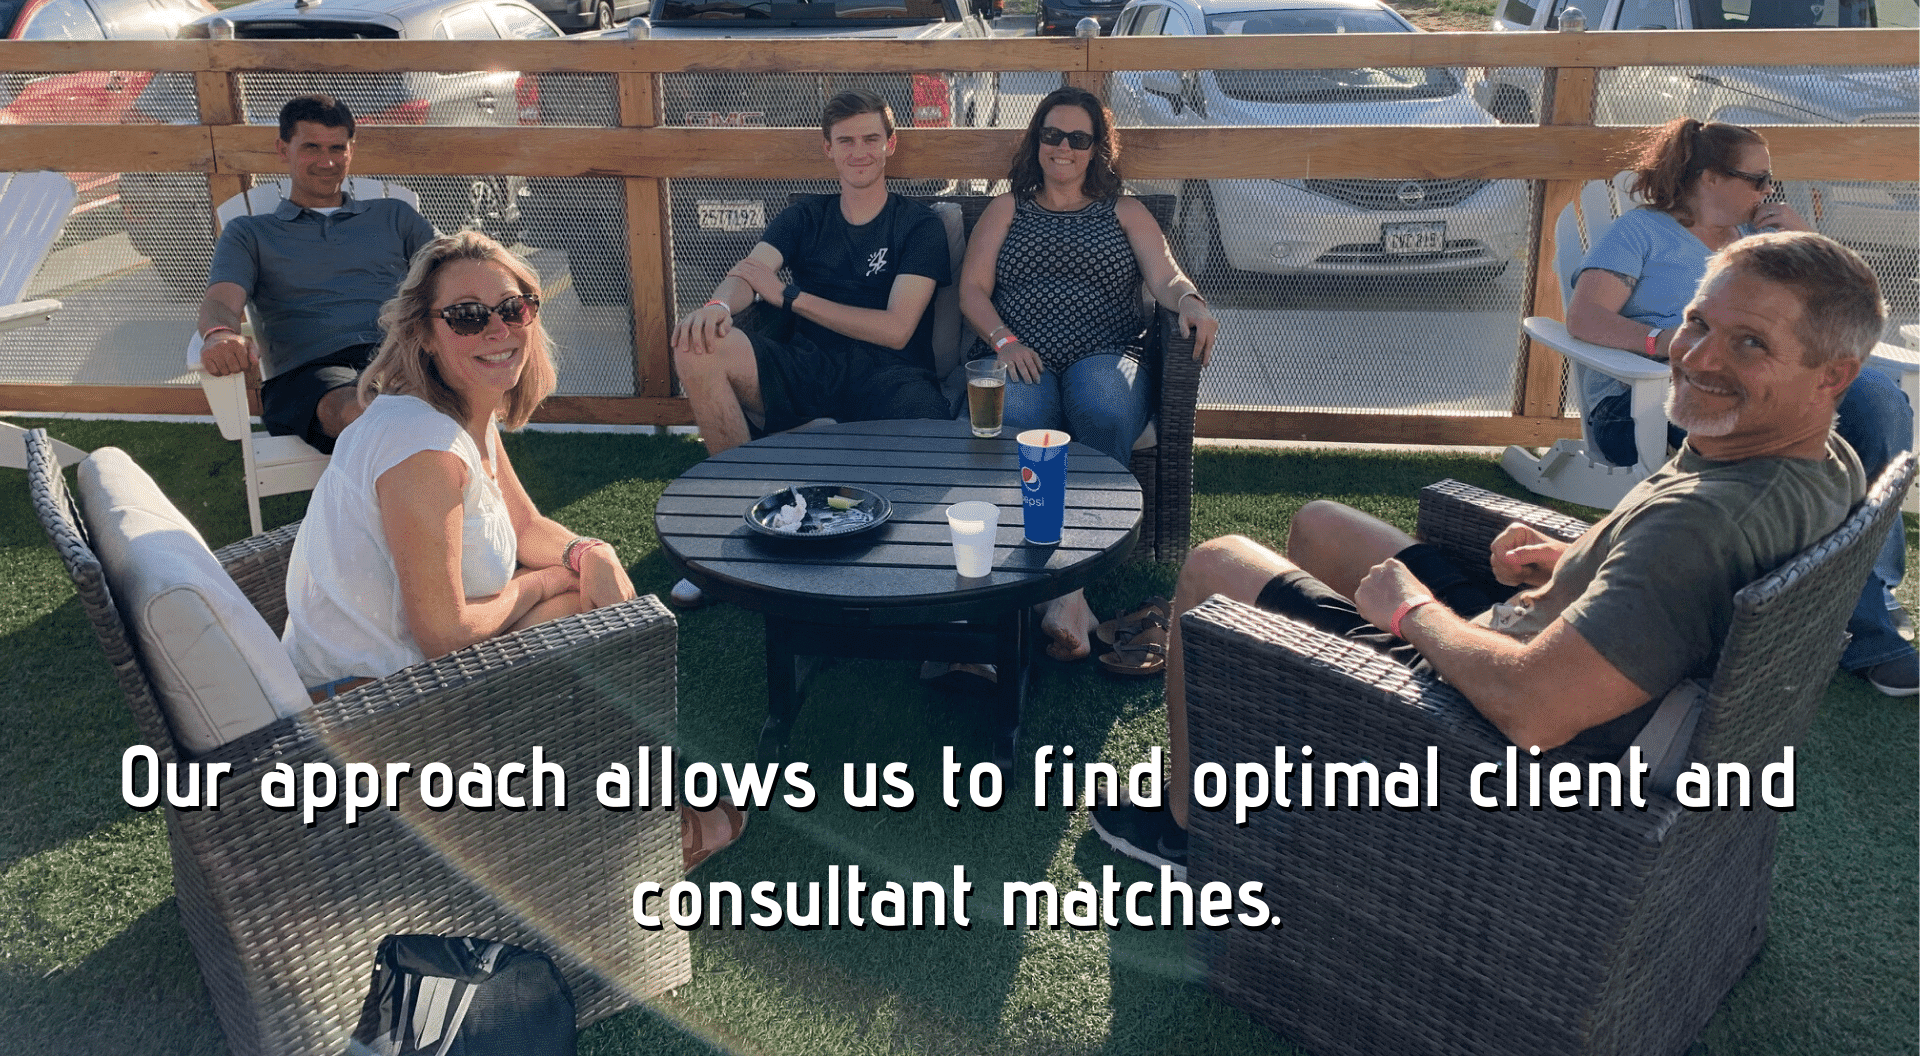 Our approach allows us to find optimal client and consultant matches. 2019